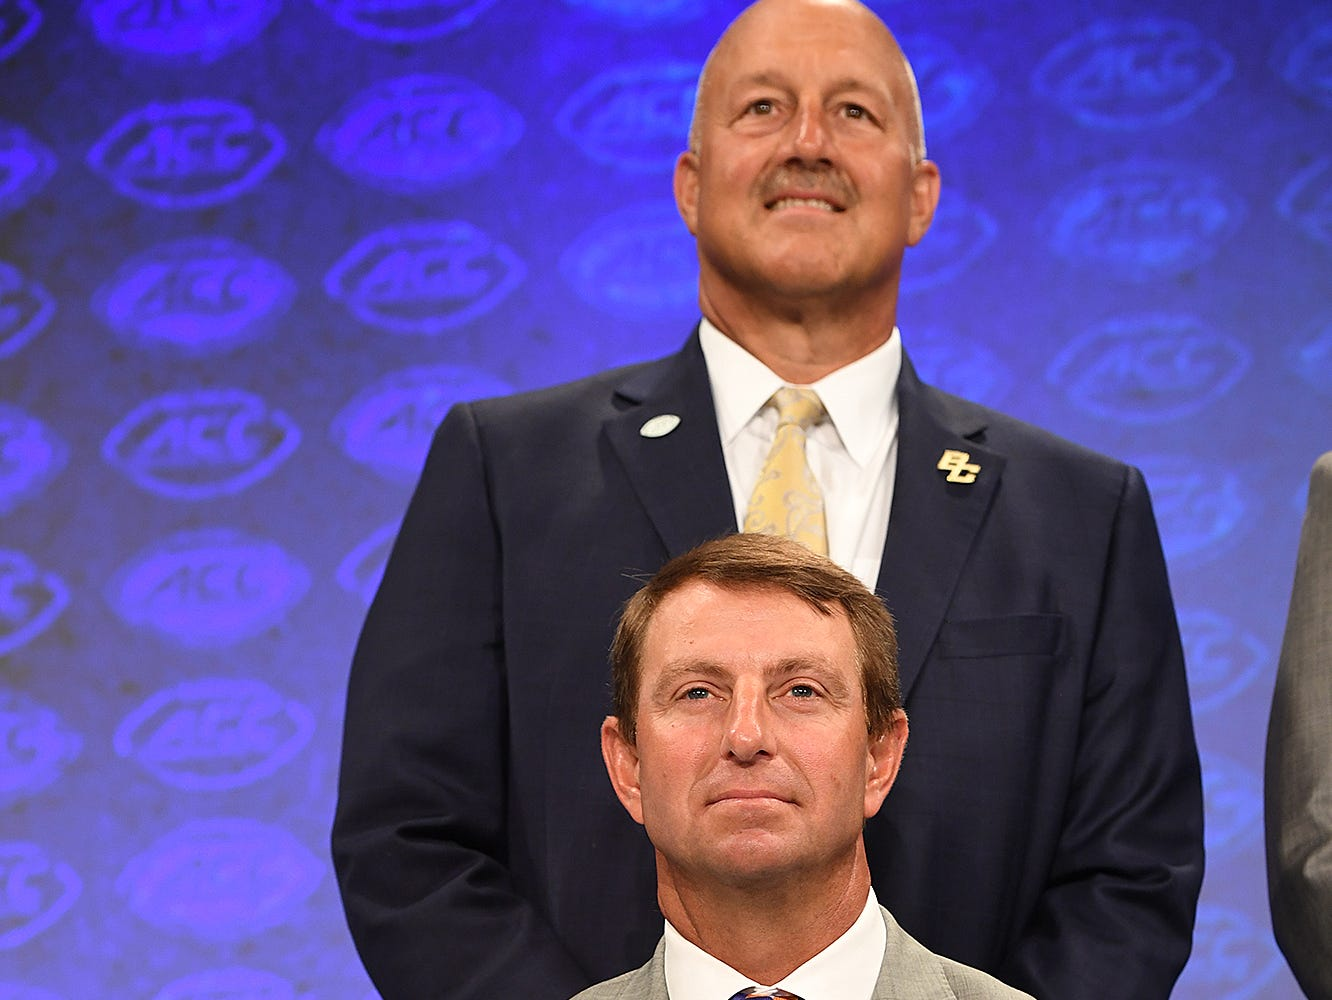 Clemson head coach Dabo Swinney, front, with Boston College head coach Steve Addazio during the Atlantic Division group photo at the ACC Football Kickoff in Charlotte, N.C., Thursday, July 19, 2018.